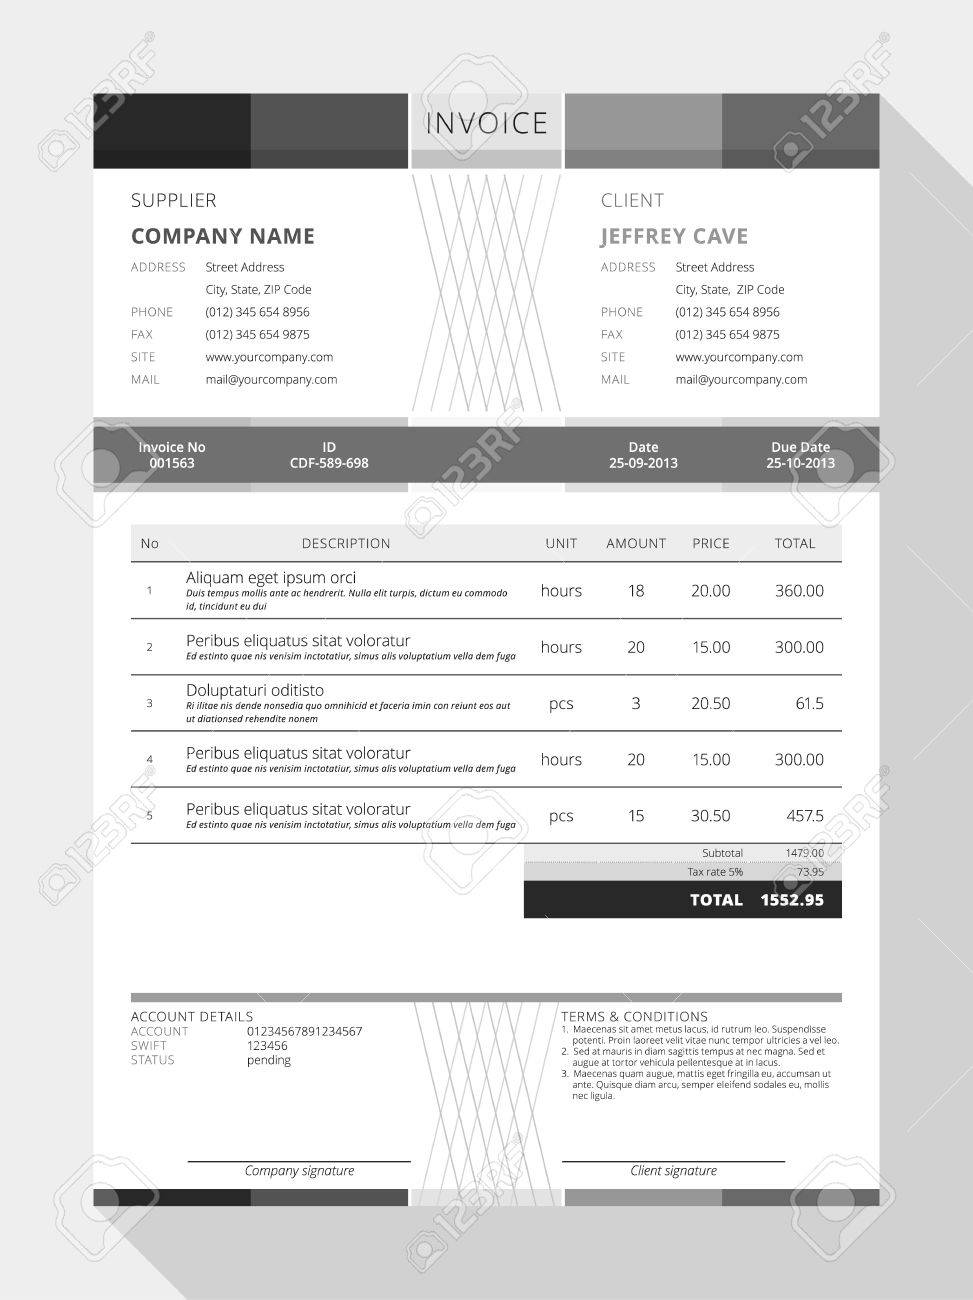 Reliefworkersus  Pleasing Design An Invoice  Professional Graphic Design Invoice  With Fascinating Vector Customizable Invoice Form Template Design Vector   Design An Invoice With Cute Edit Invoice Also Invoice Forma In Addition Invoice Database Design And Valid Invoice As Well As Invoice Performa Additionally Blank Printable Invoices From Happytomco With Reliefworkersus  Fascinating Design An Invoice  Professional Graphic Design Invoice  With Cute Vector Customizable Invoice Form Template Design Vector   Design An Invoice And Pleasing Edit Invoice Also Invoice Forma In Addition Invoice Database Design From Happytomco